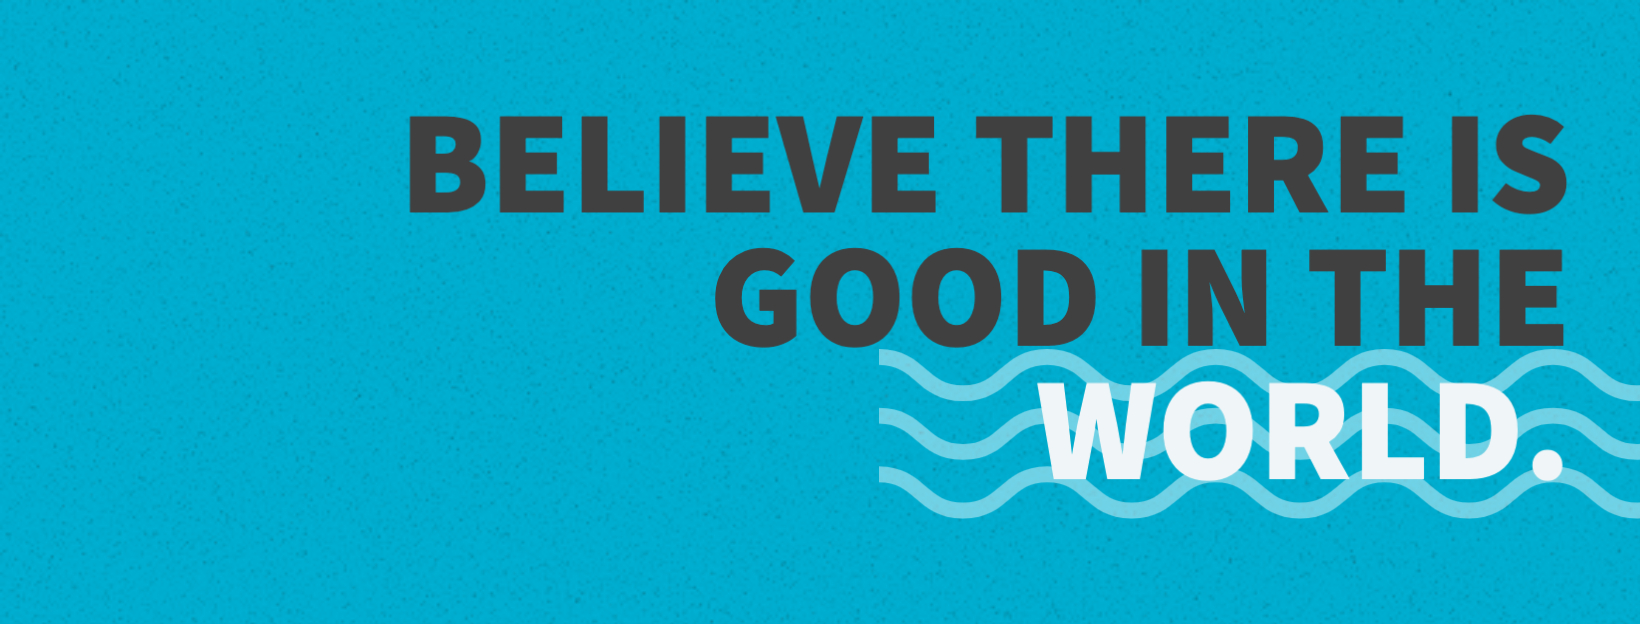 Believe there is good in the world.